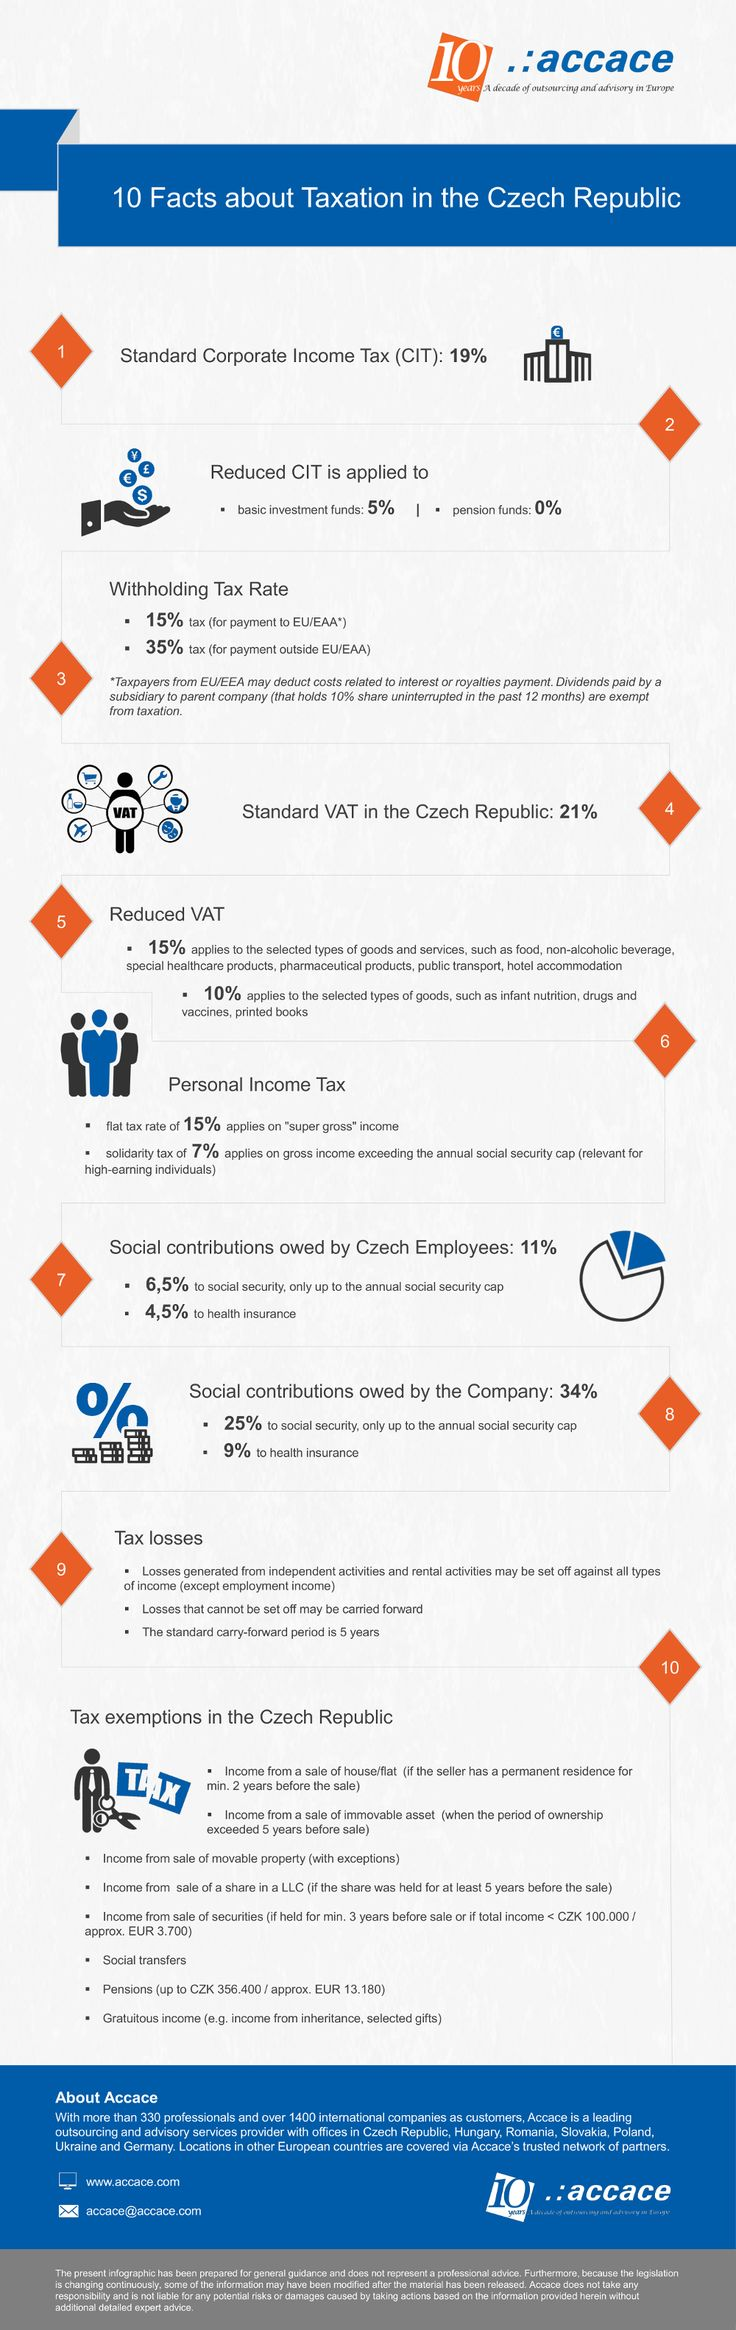 10 facts about taxation in the Czech Republic | Infographic